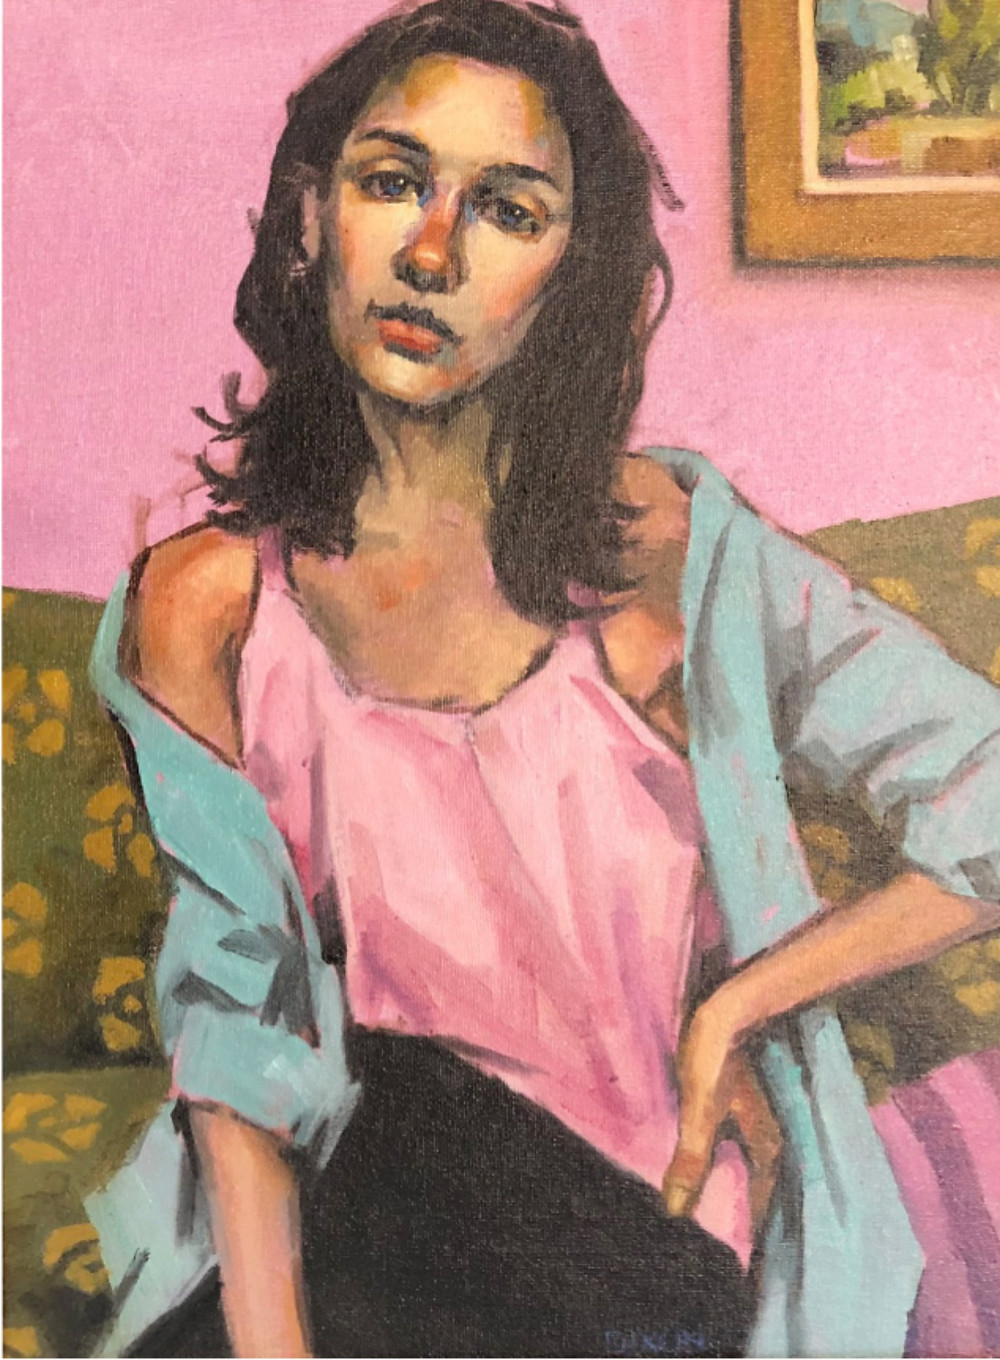 Young woman in a pink room, wearing a pink shirt.